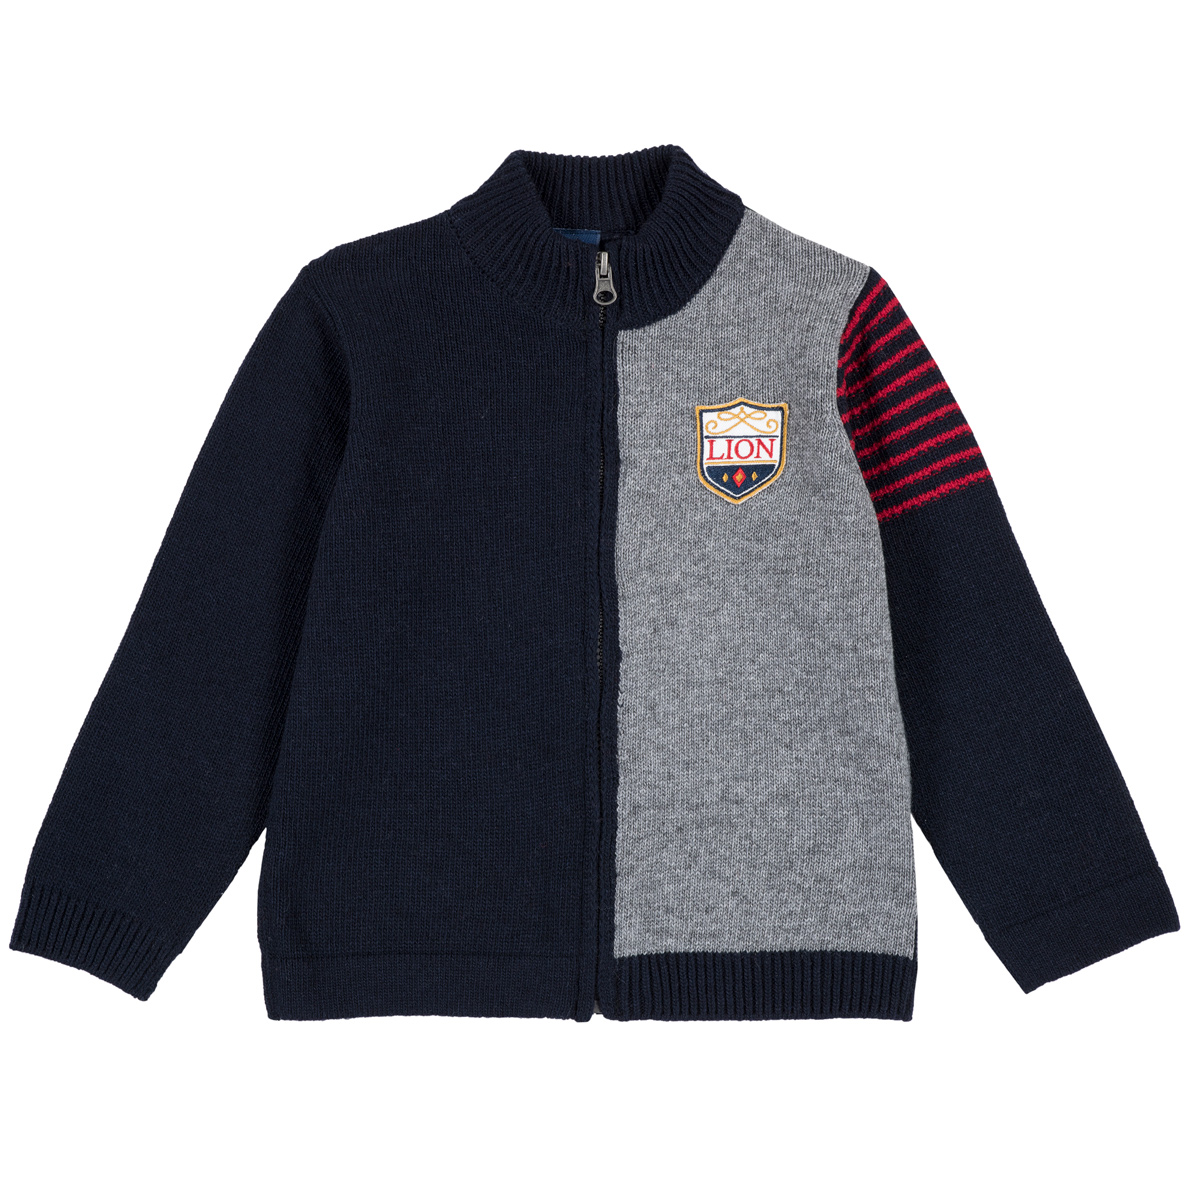 Cardigan Copii Chicco, Tricotat, Blazon Cusut, 96980